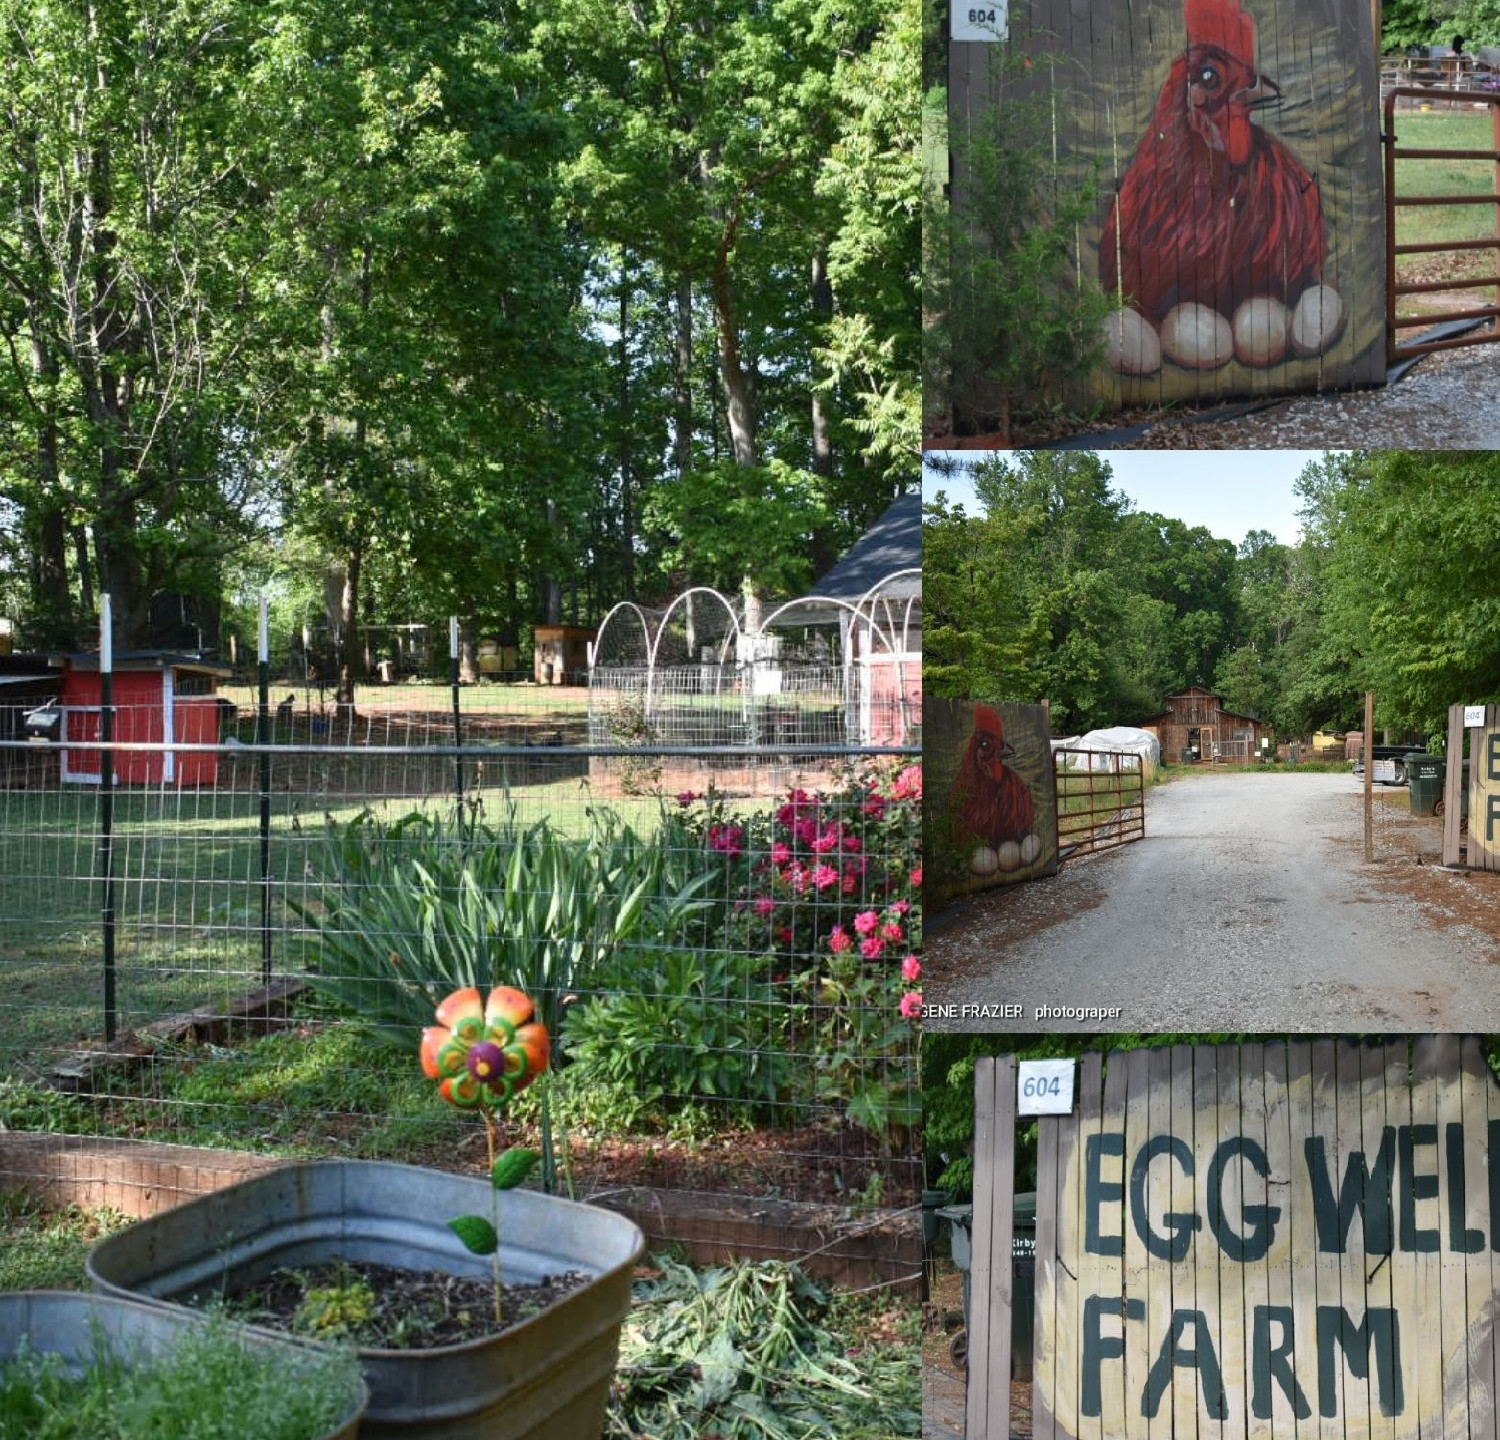 Egg Well Farm